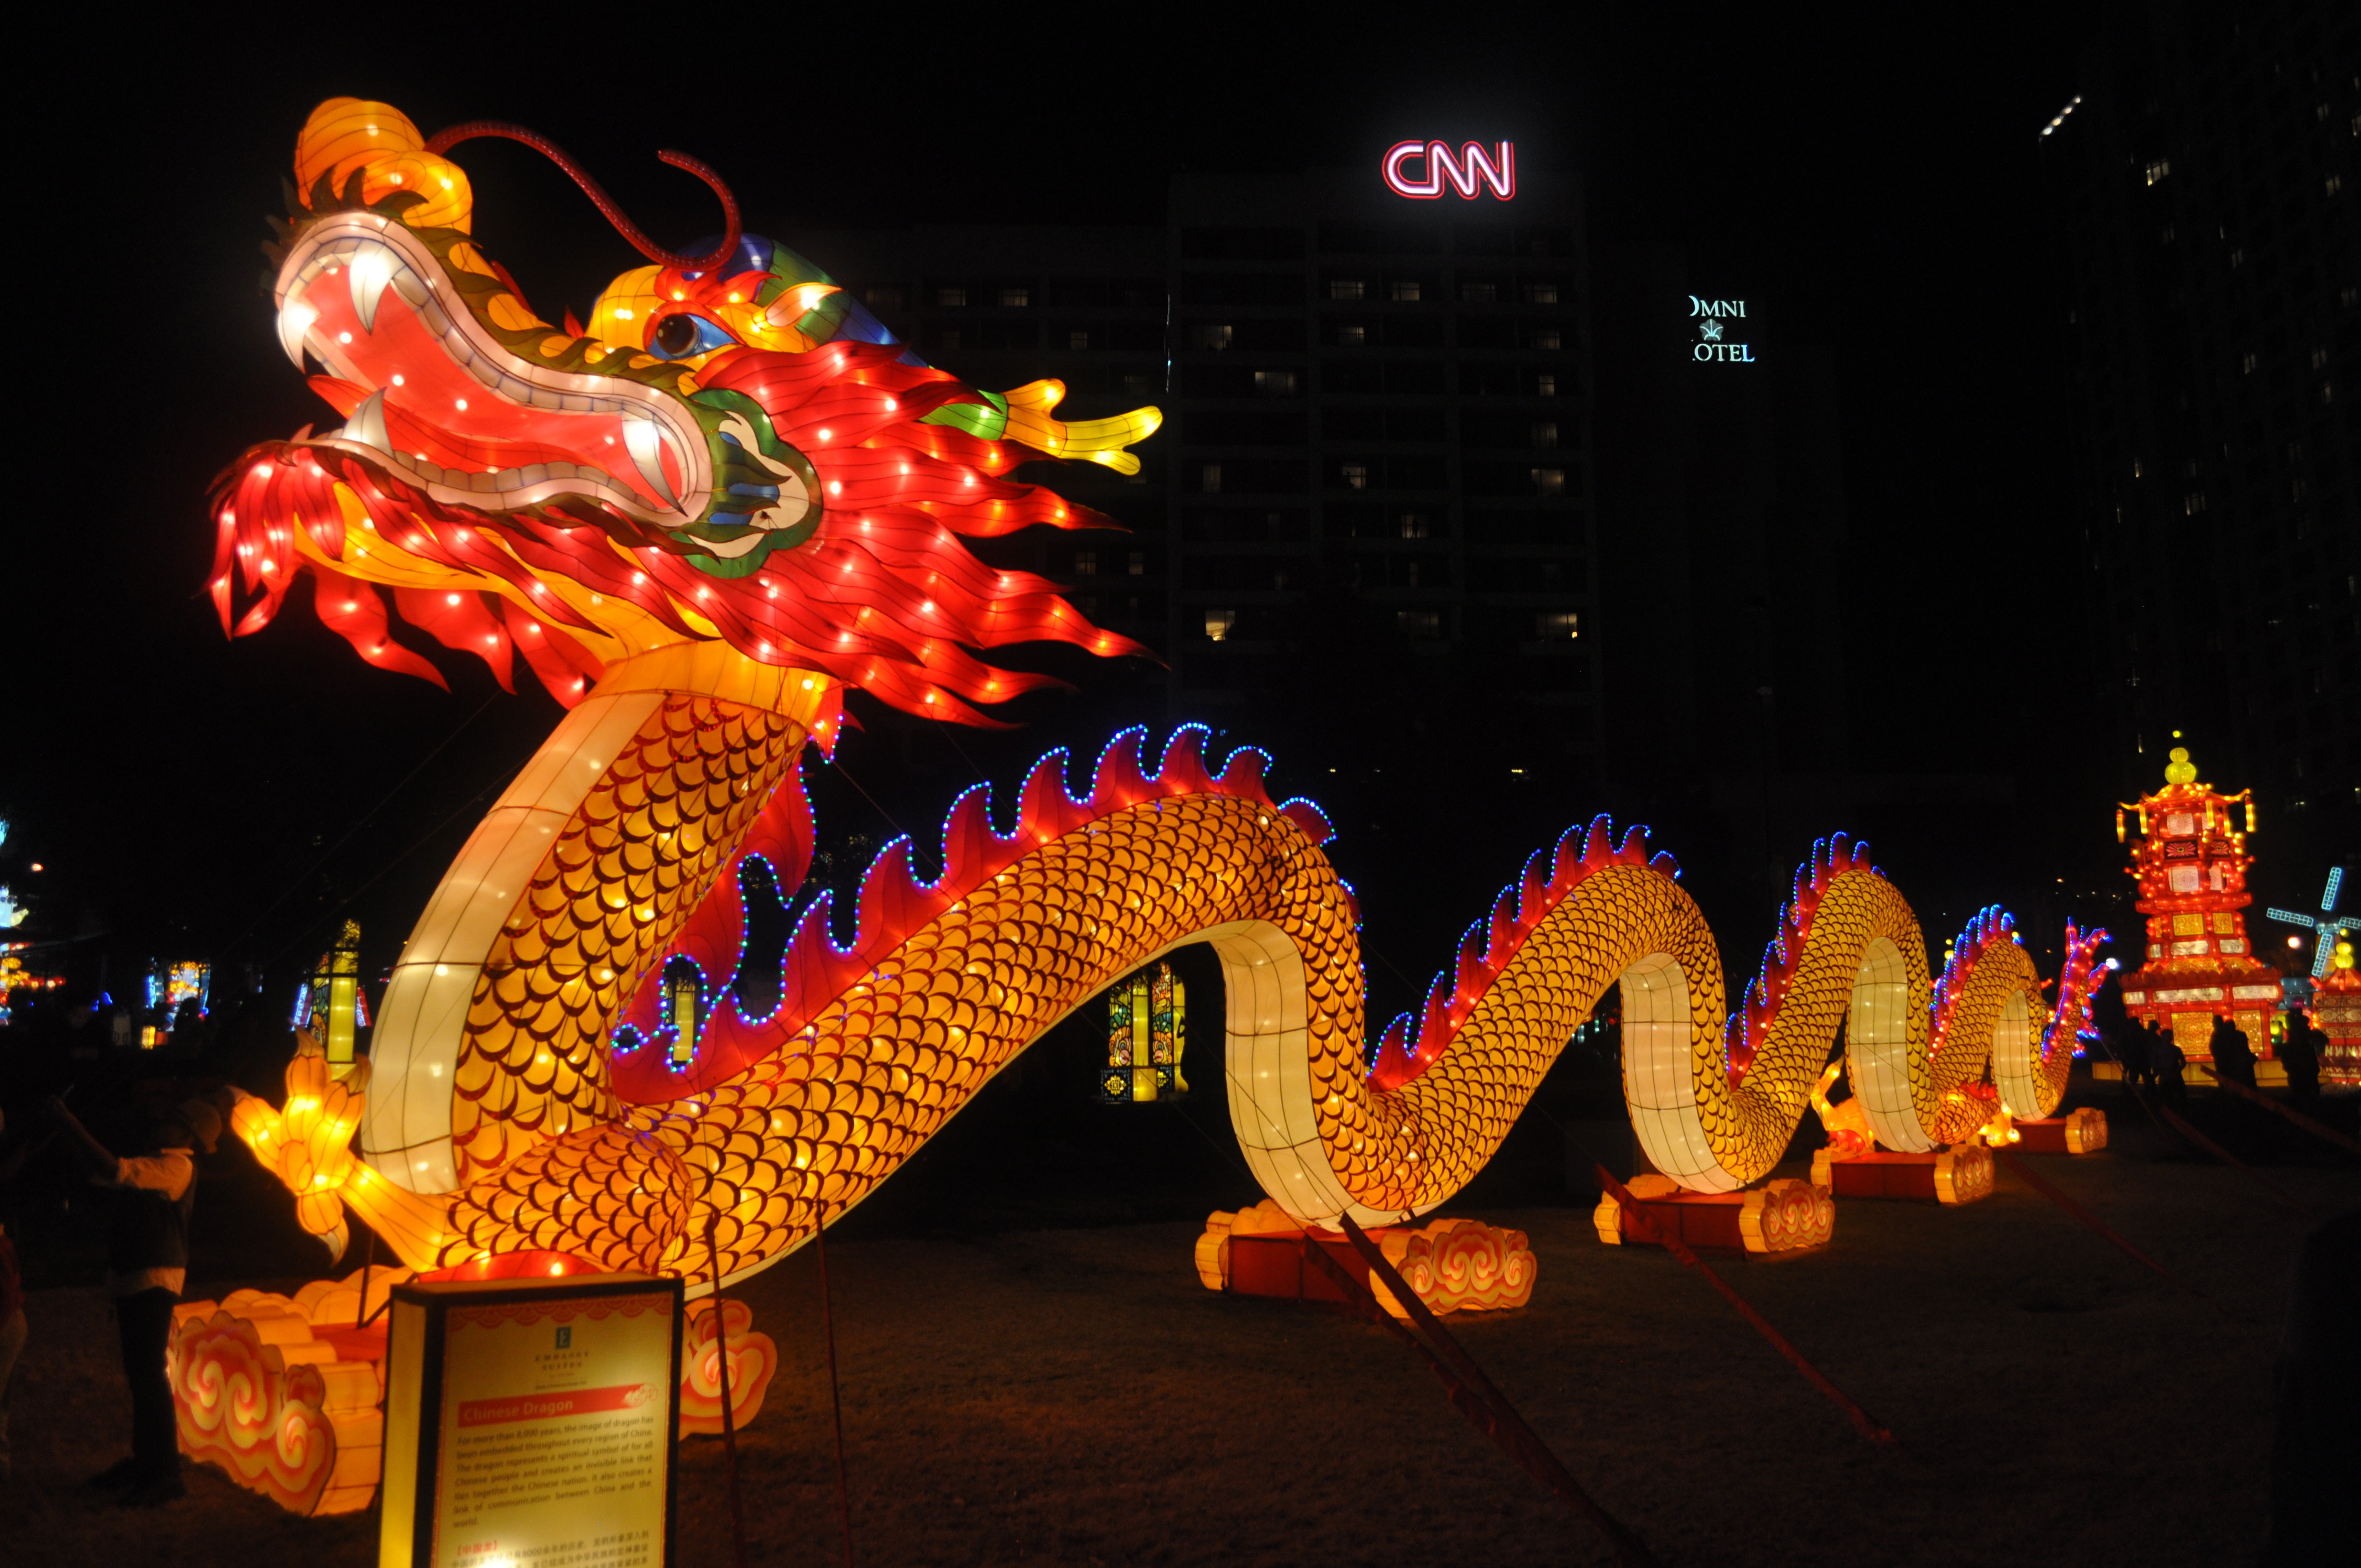 A long, red, yellow, and blue illuminated dragon stretches through Centennial Olympic Park under the CNN Center sign.